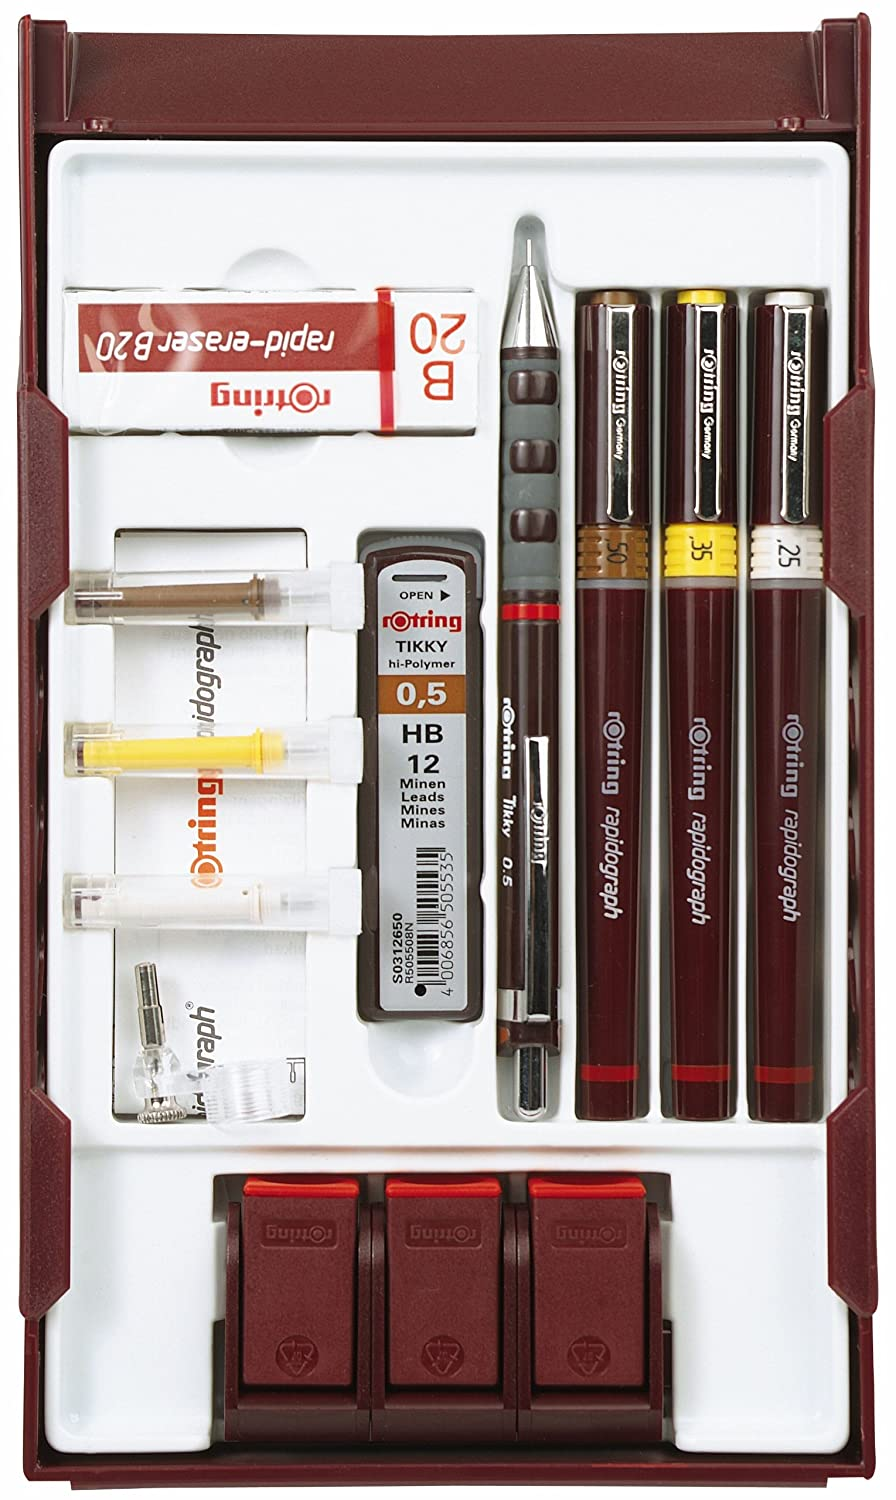 Rotring College Set: S0699530 Newell Rubbermaid